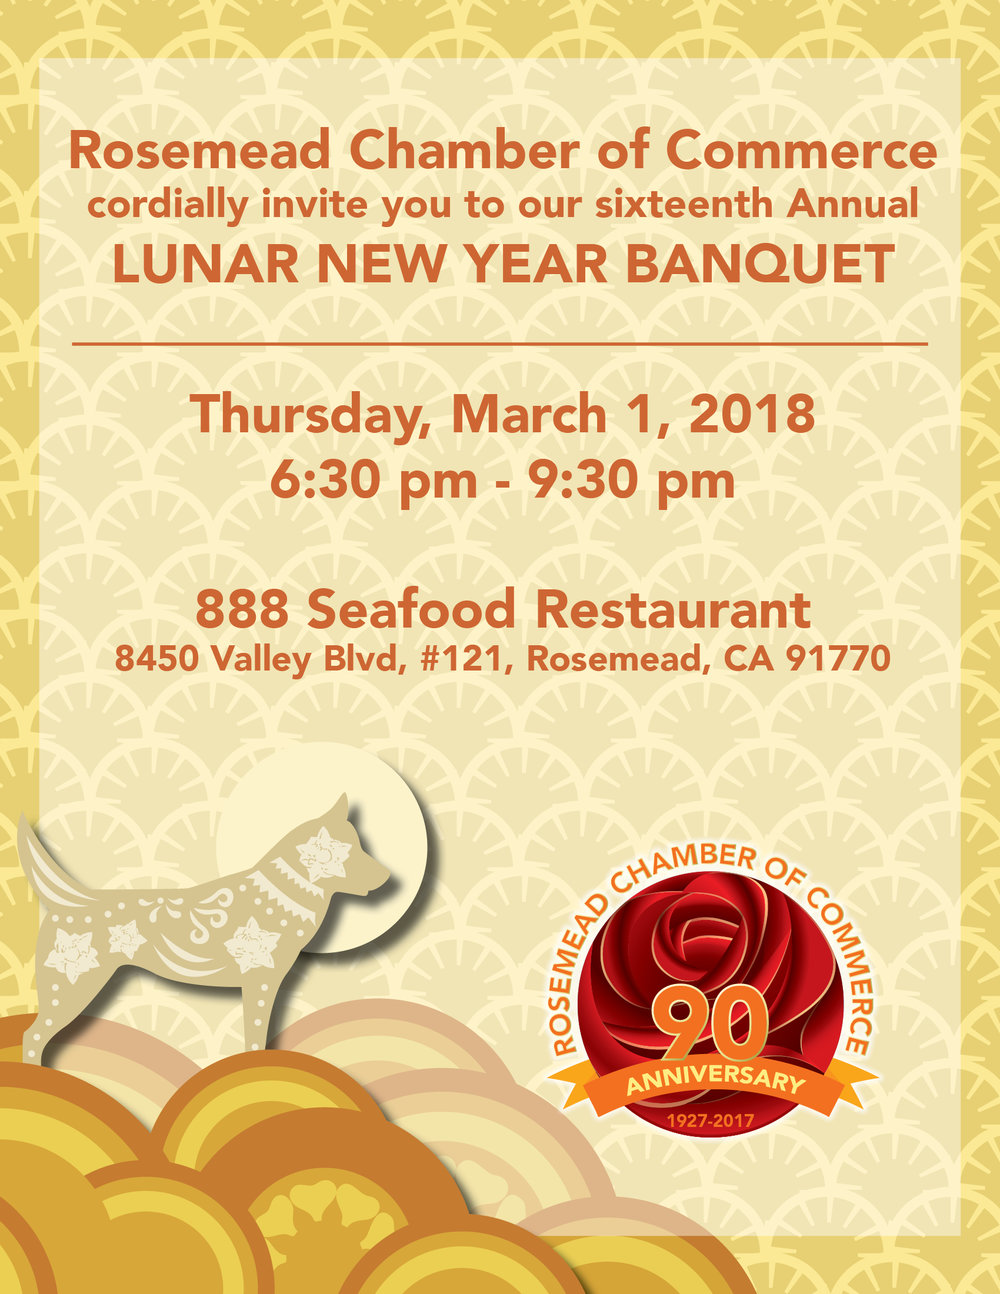 16th Annual Lunar New Year Banquet - March 1st, 2018